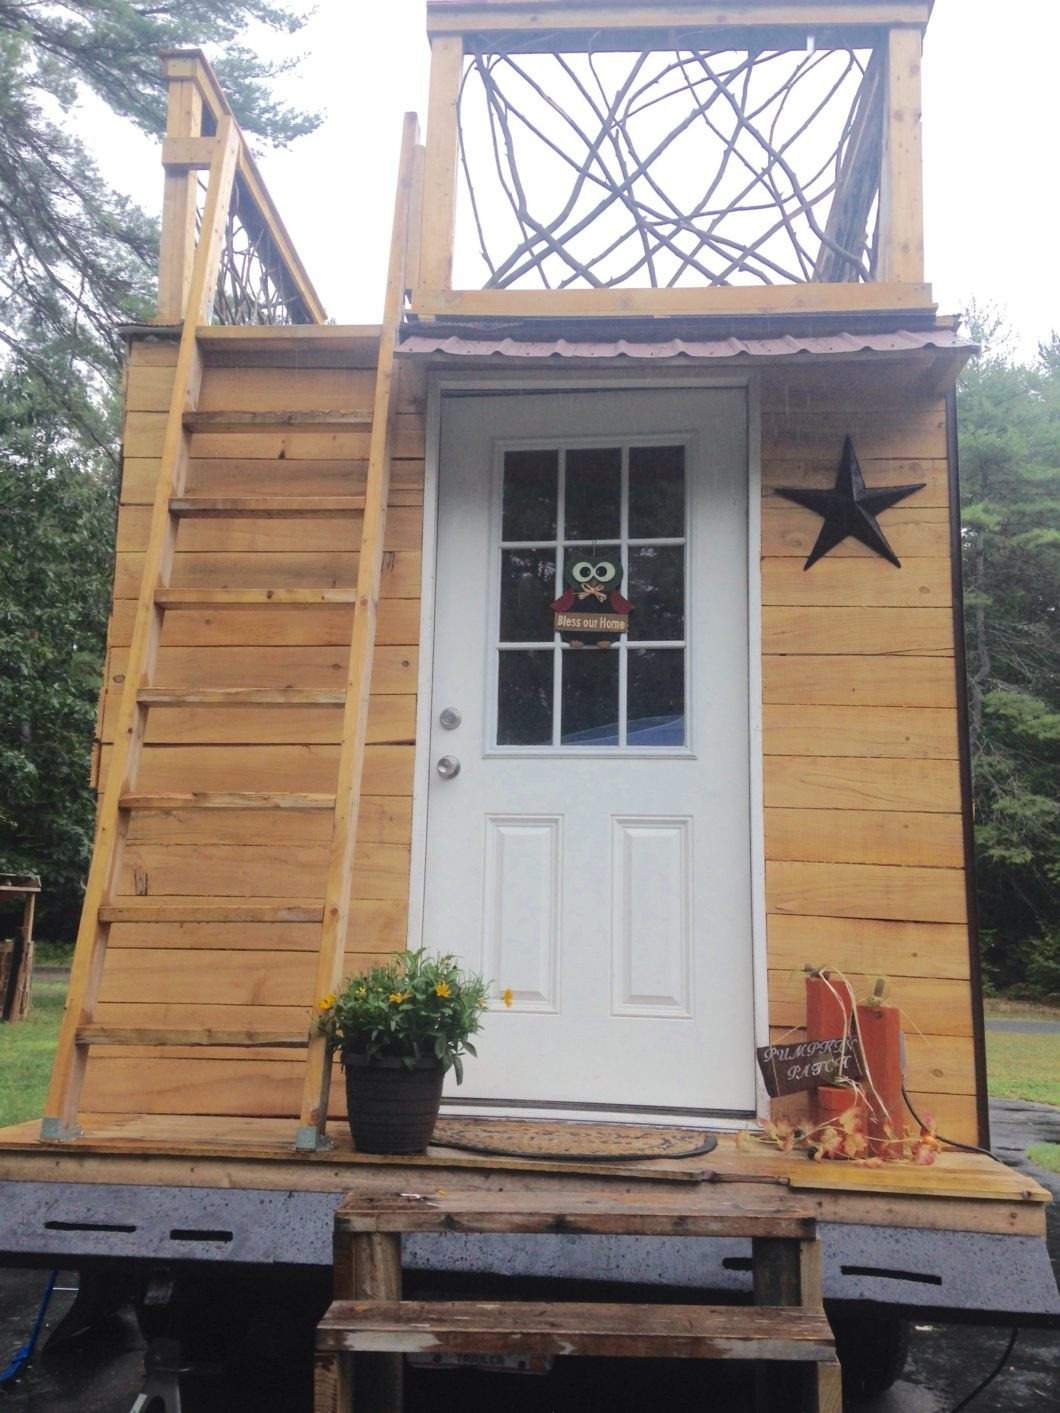 How to Build An Affordable House New Tiny House Living On A Bud – 10 Inexpensive Small Homes